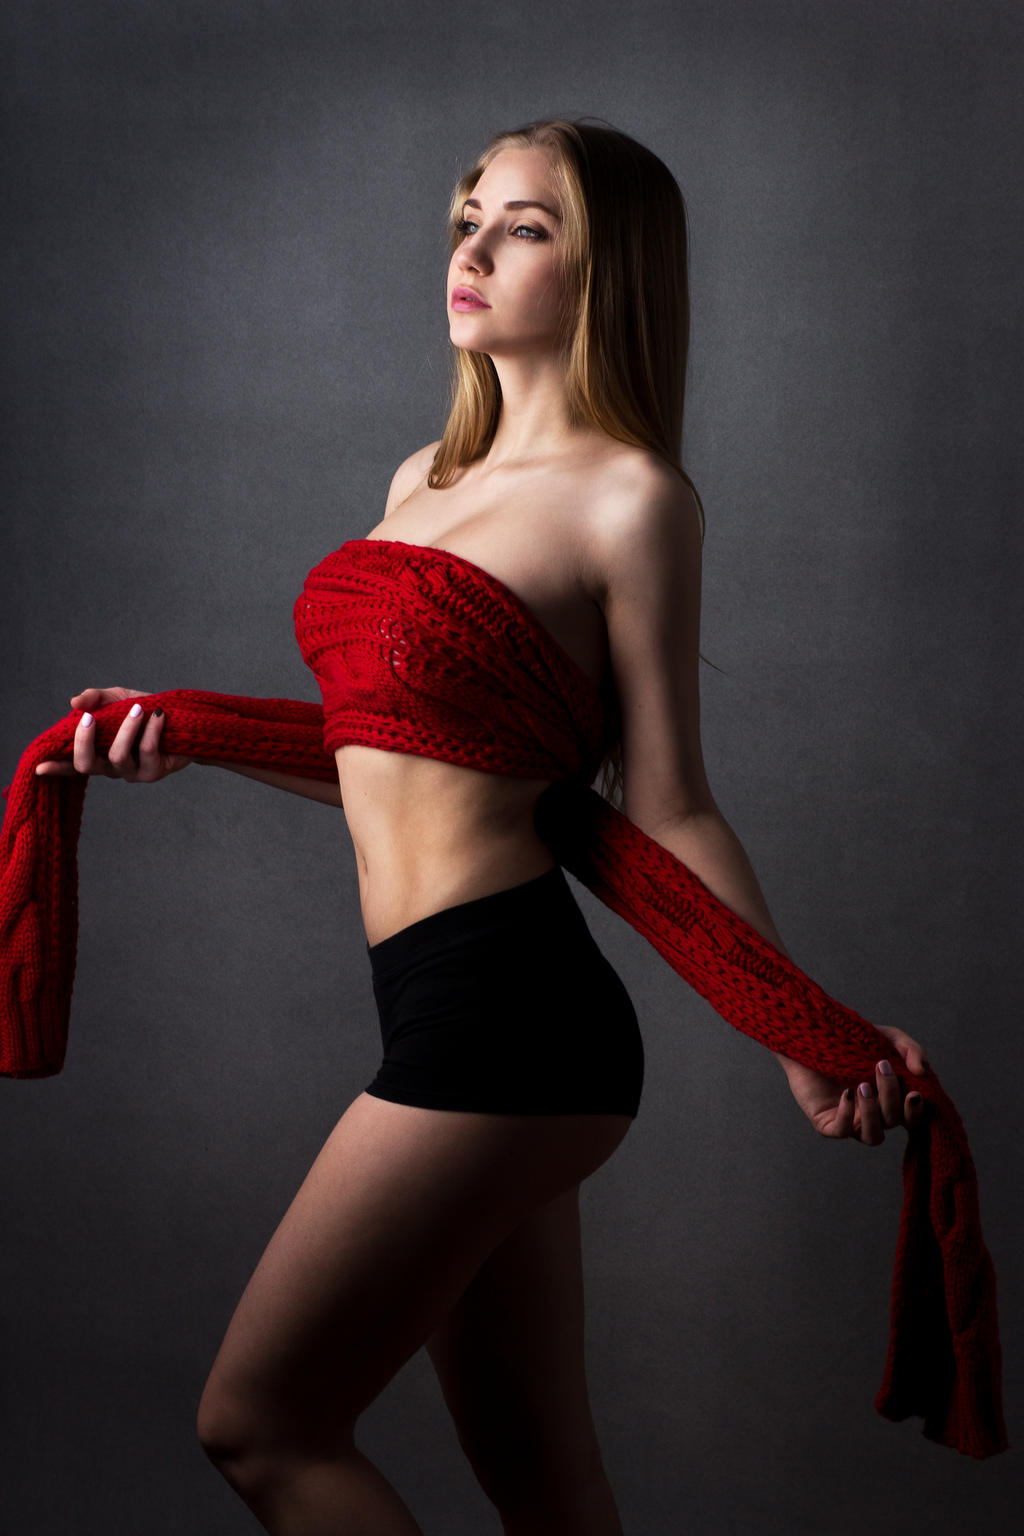 red scarf 2 by Aledgan